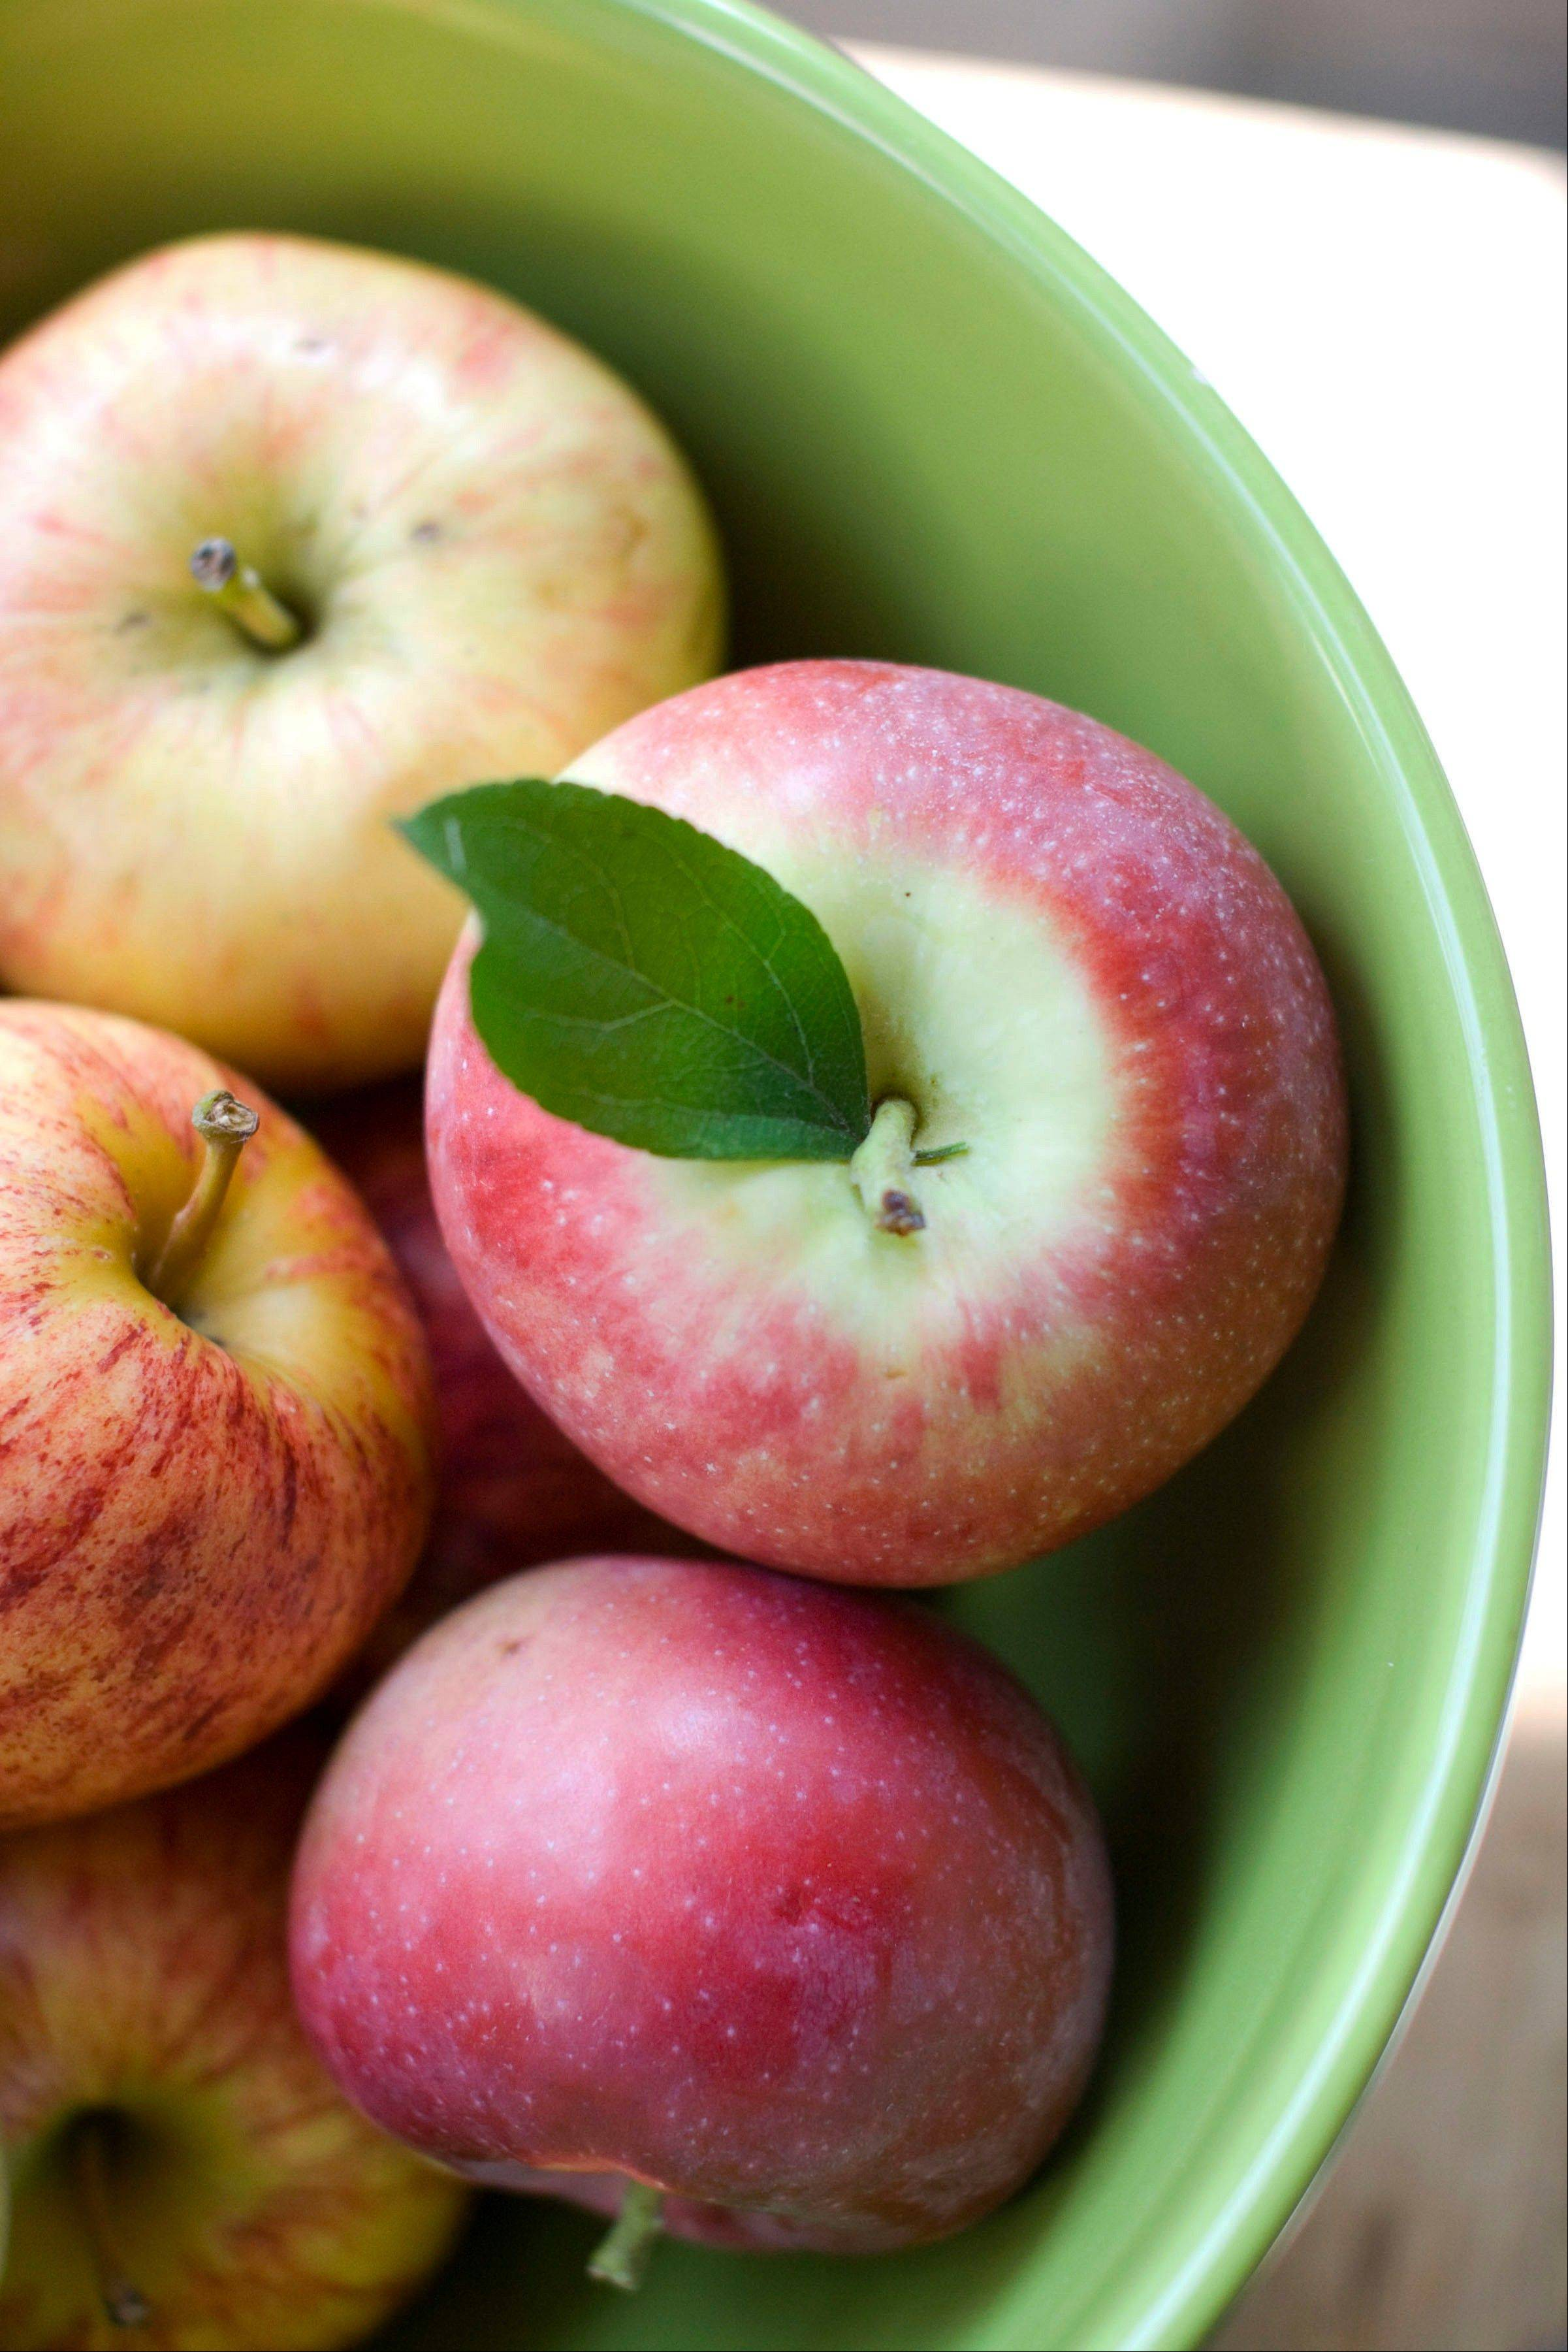 Apples work well in sweet and savory dishes, the key is knowing which variety to select.